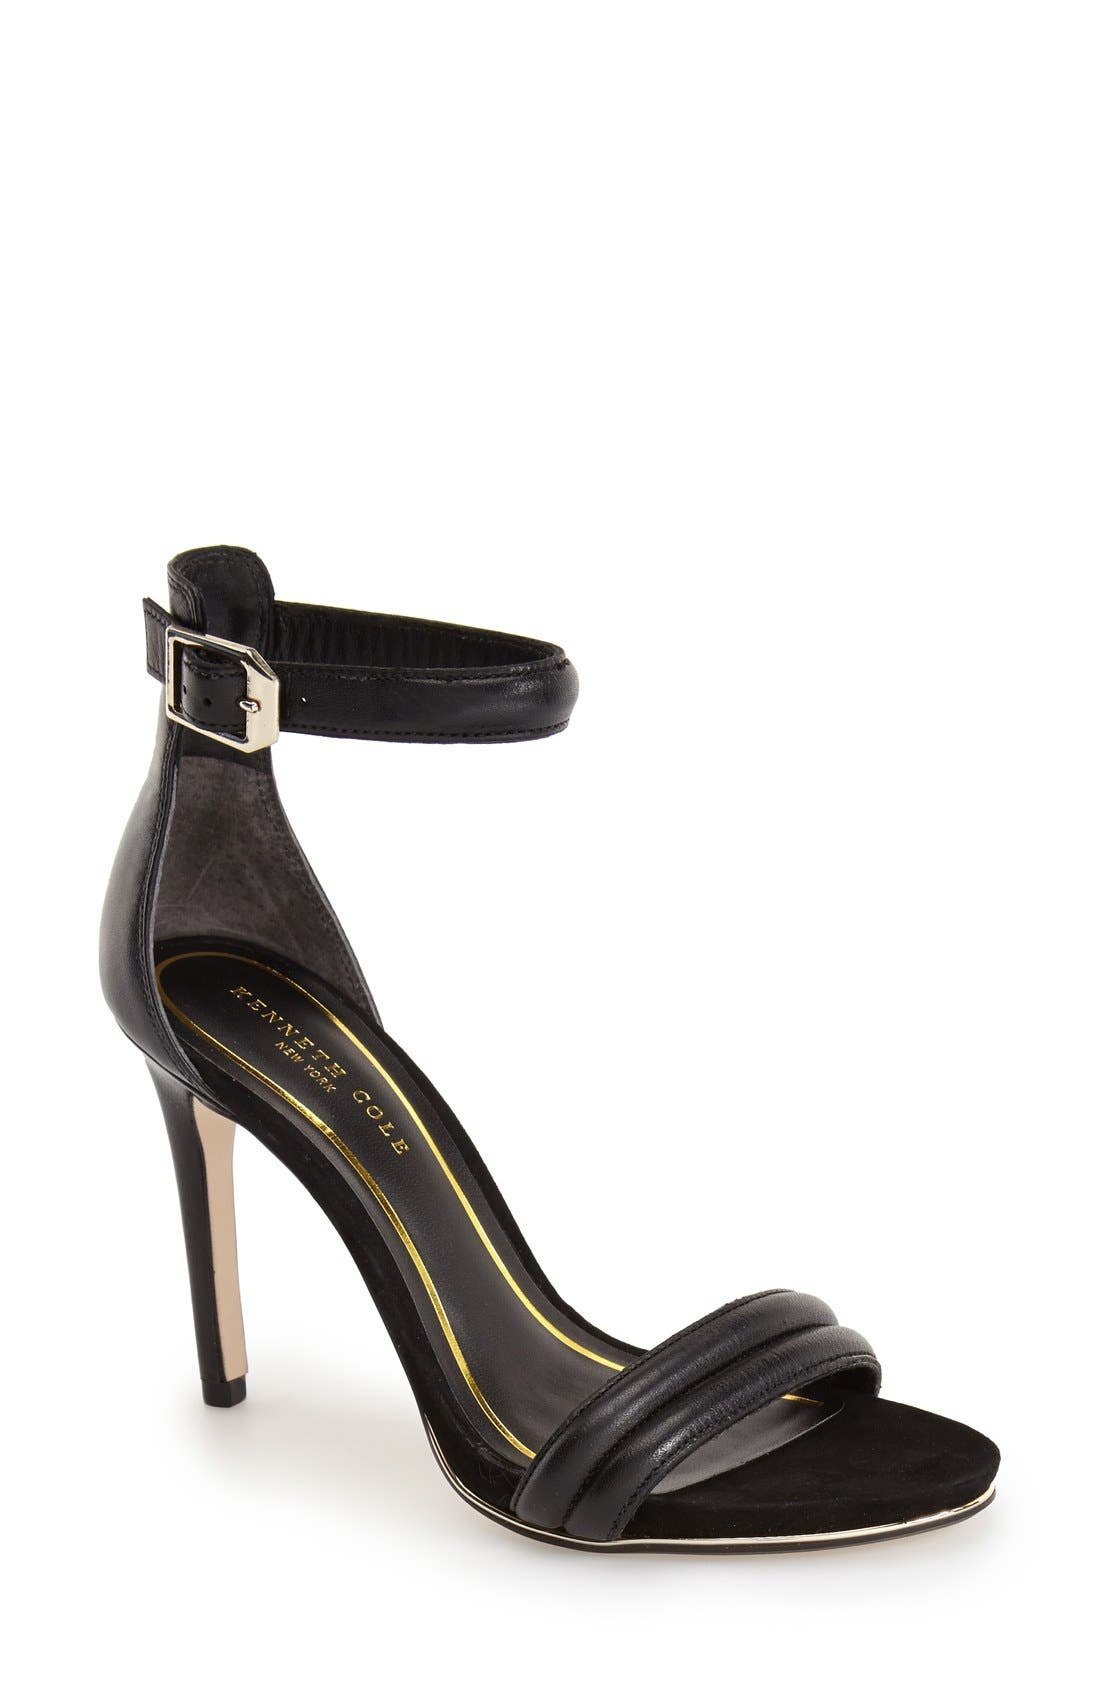 'Brooke' Ankle Strap Sandal,                             Main thumbnail 1, color,                             Black Leather